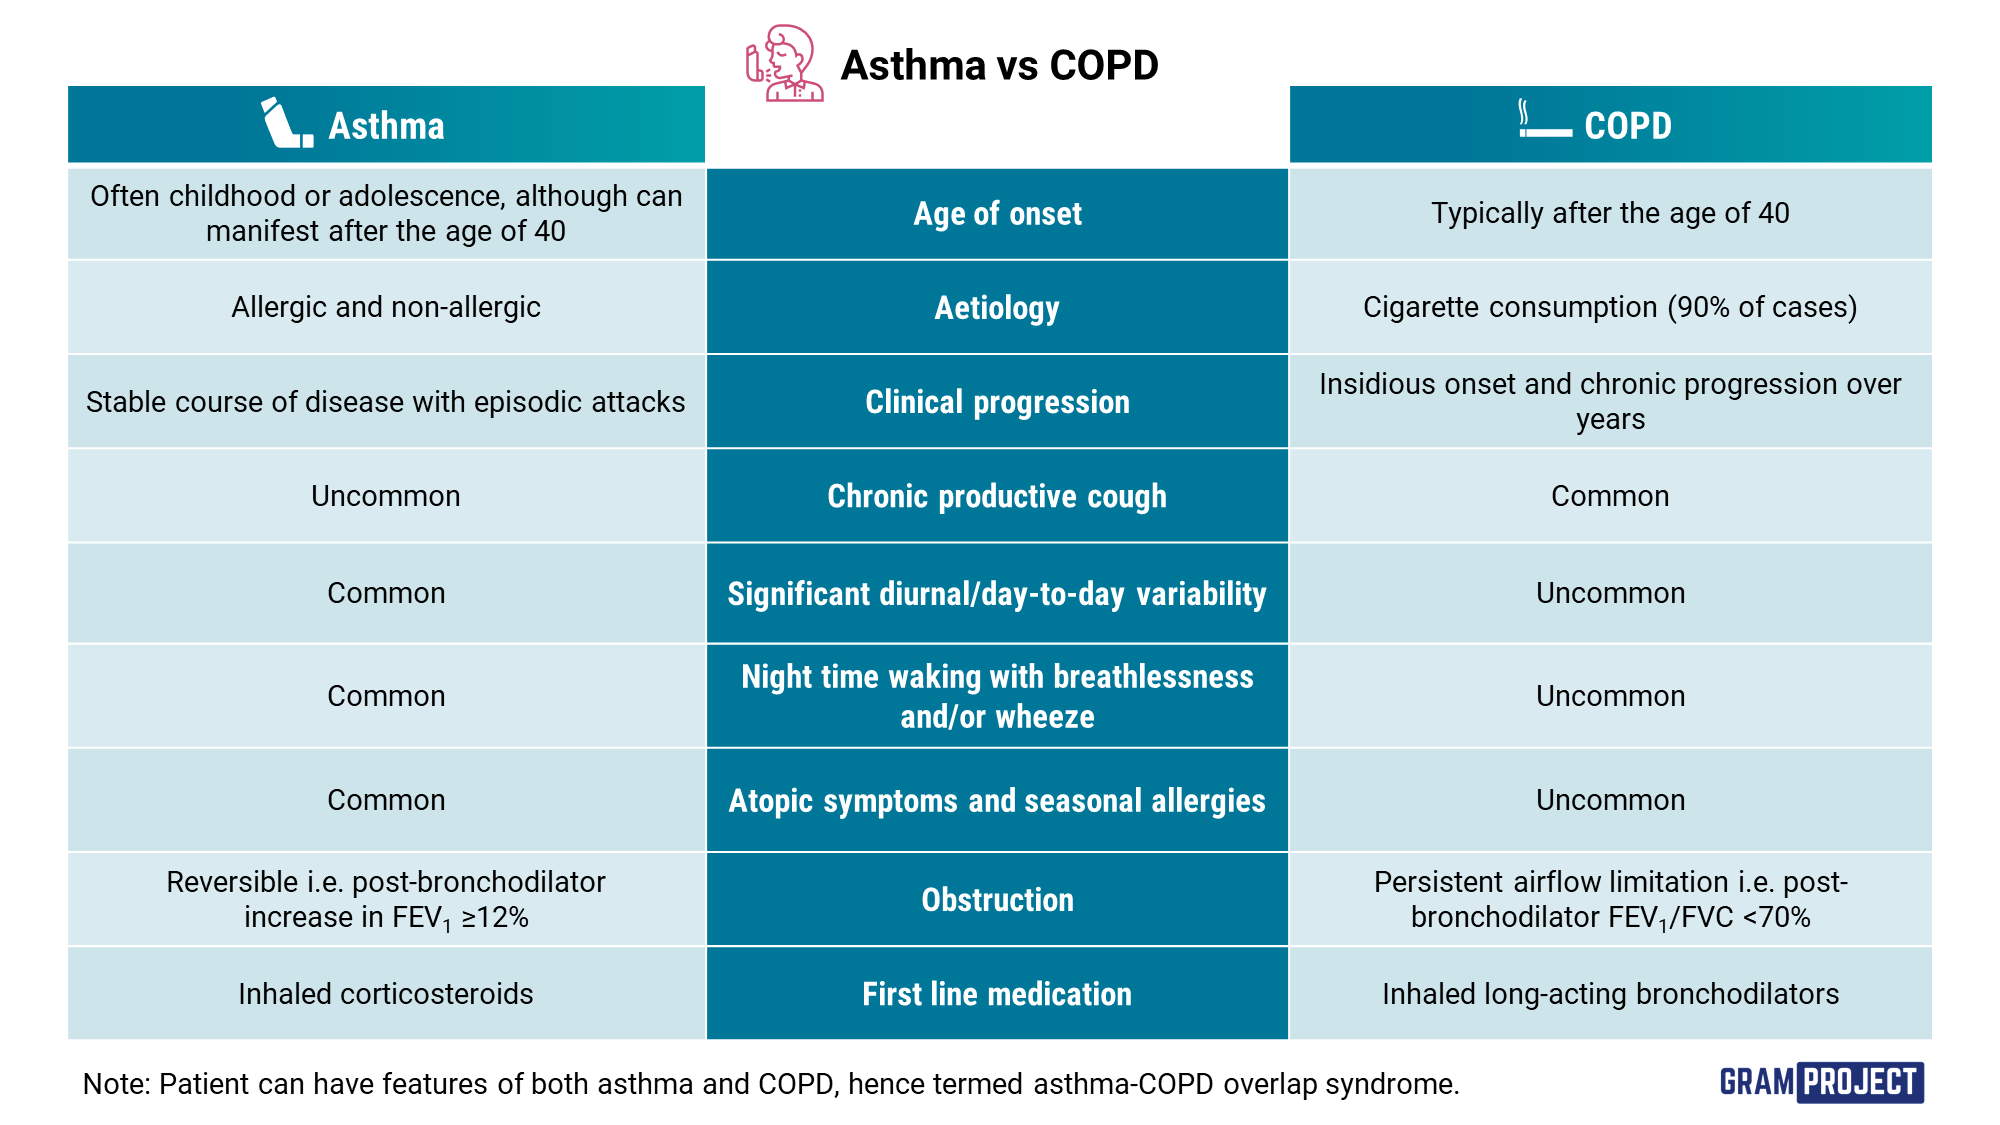 Table of comparison between asthma and COPD